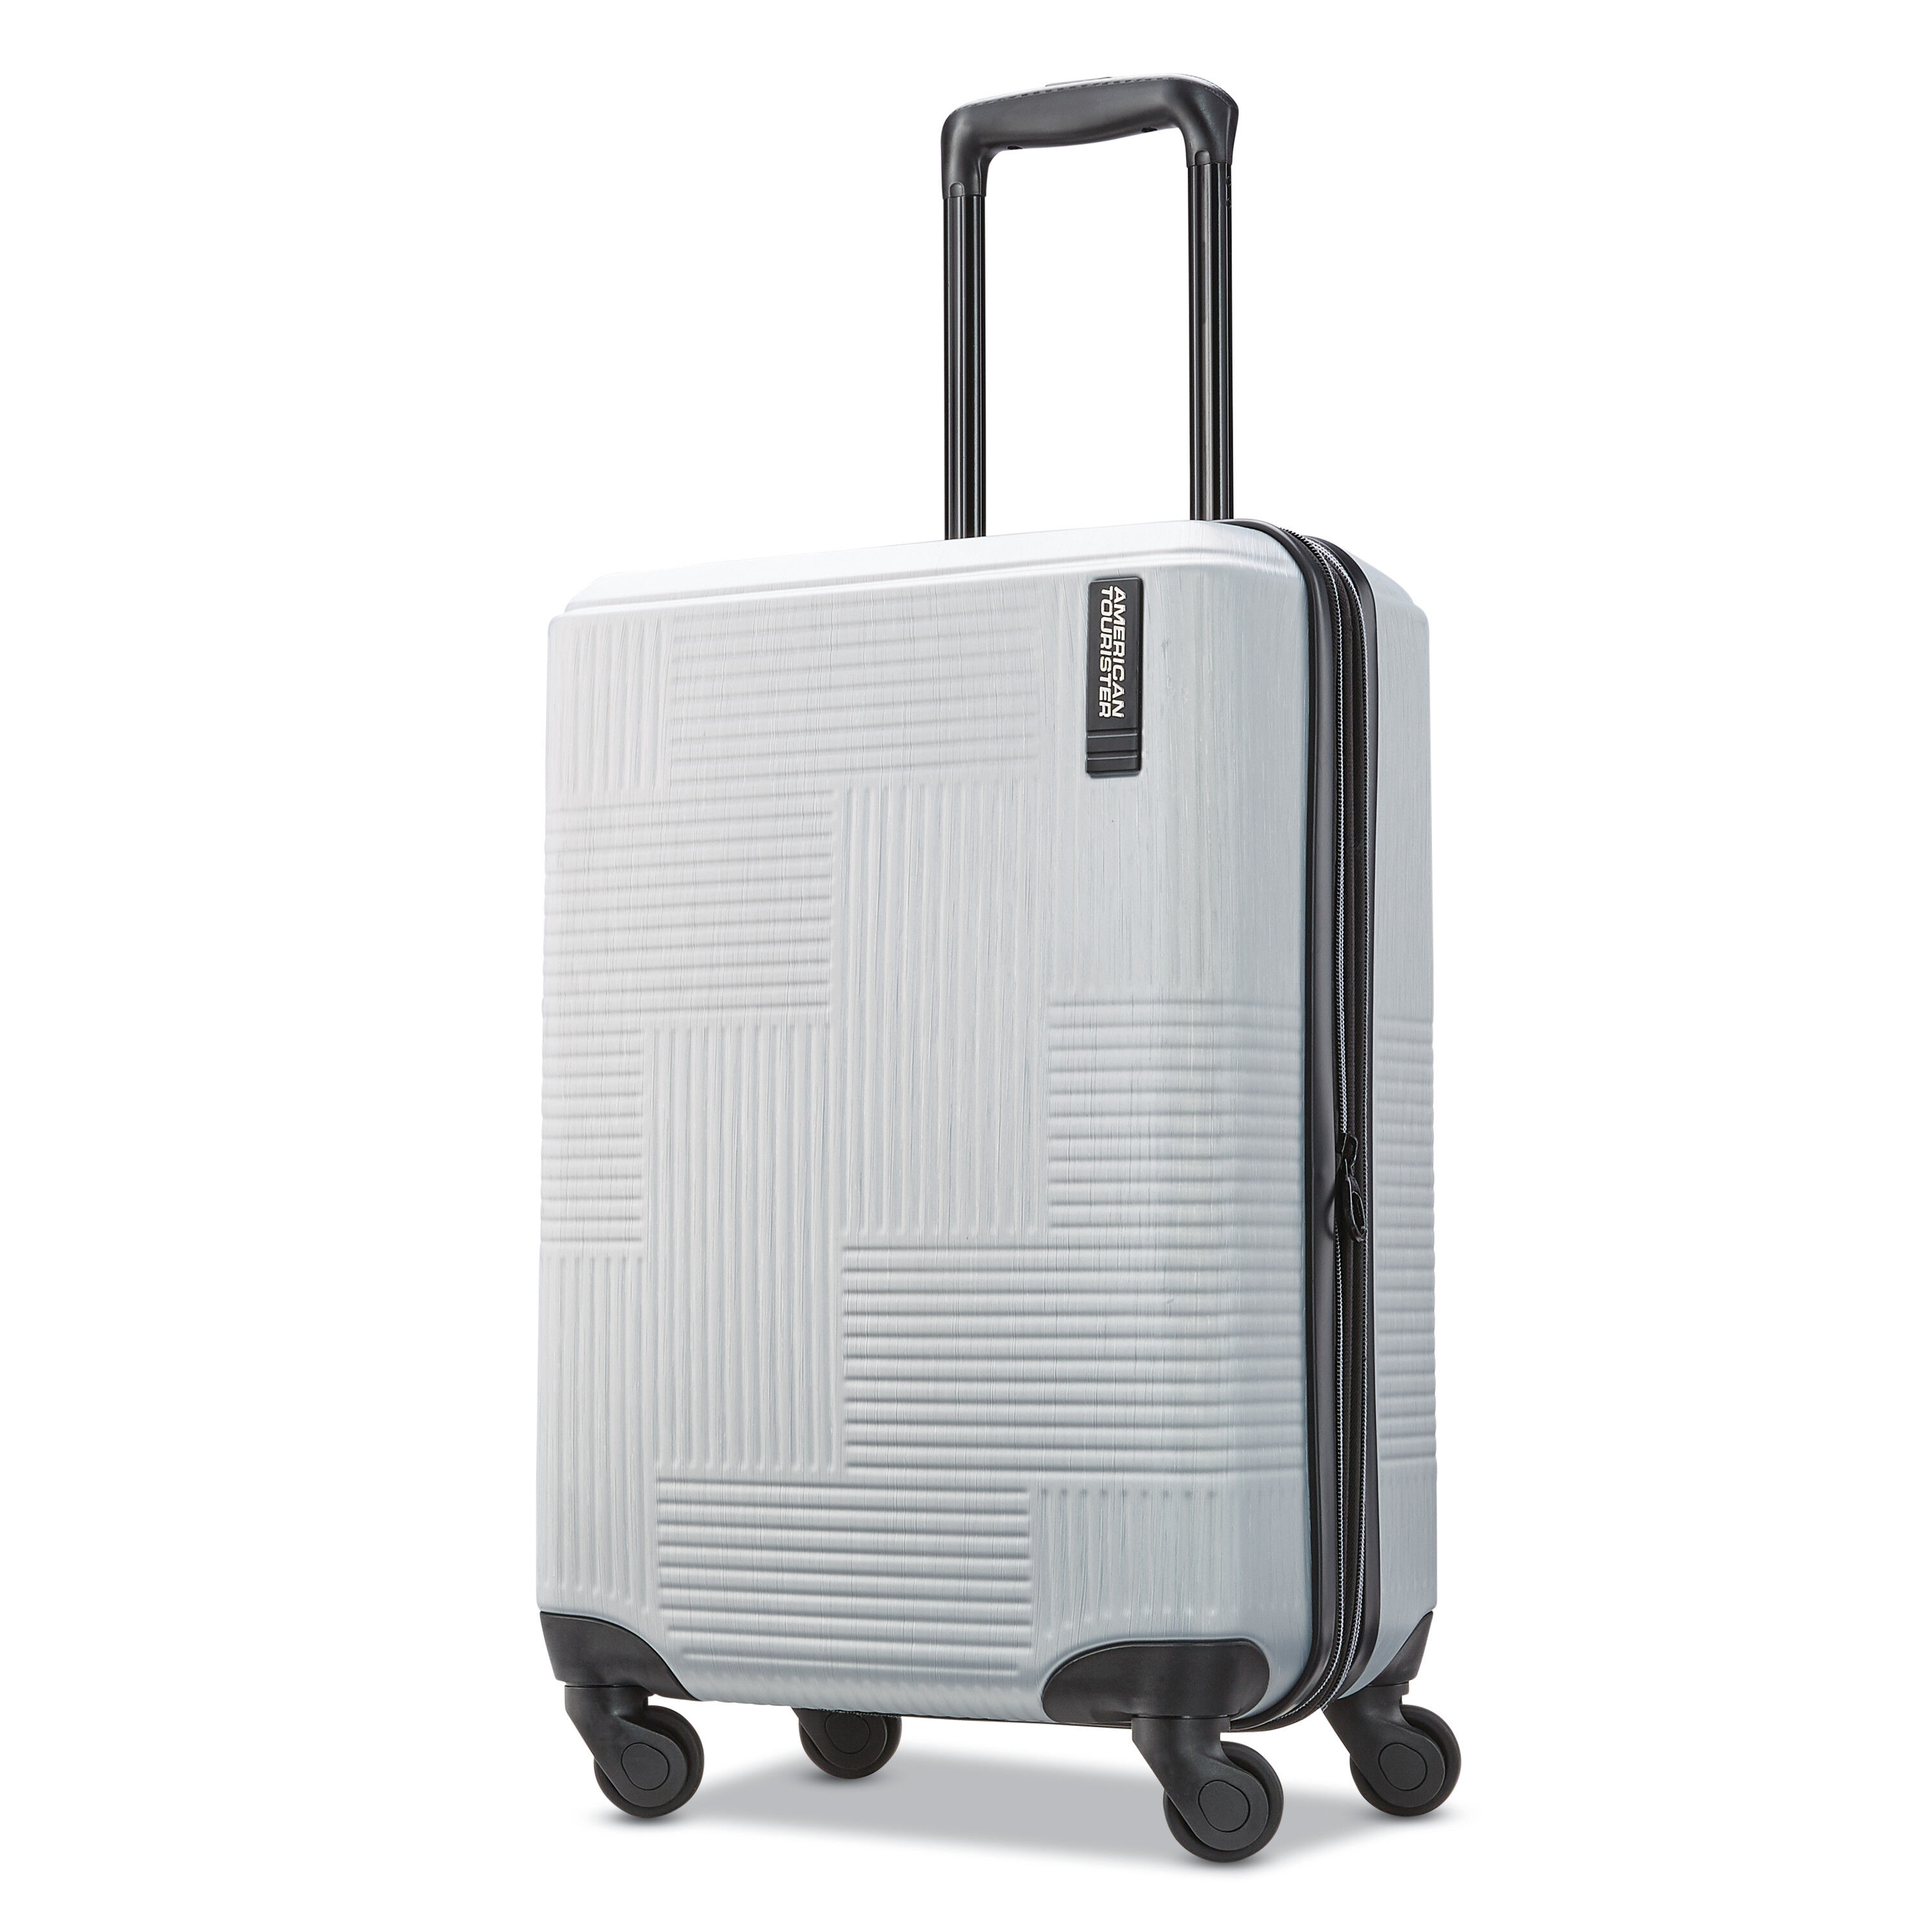 luggage suitcases and carry